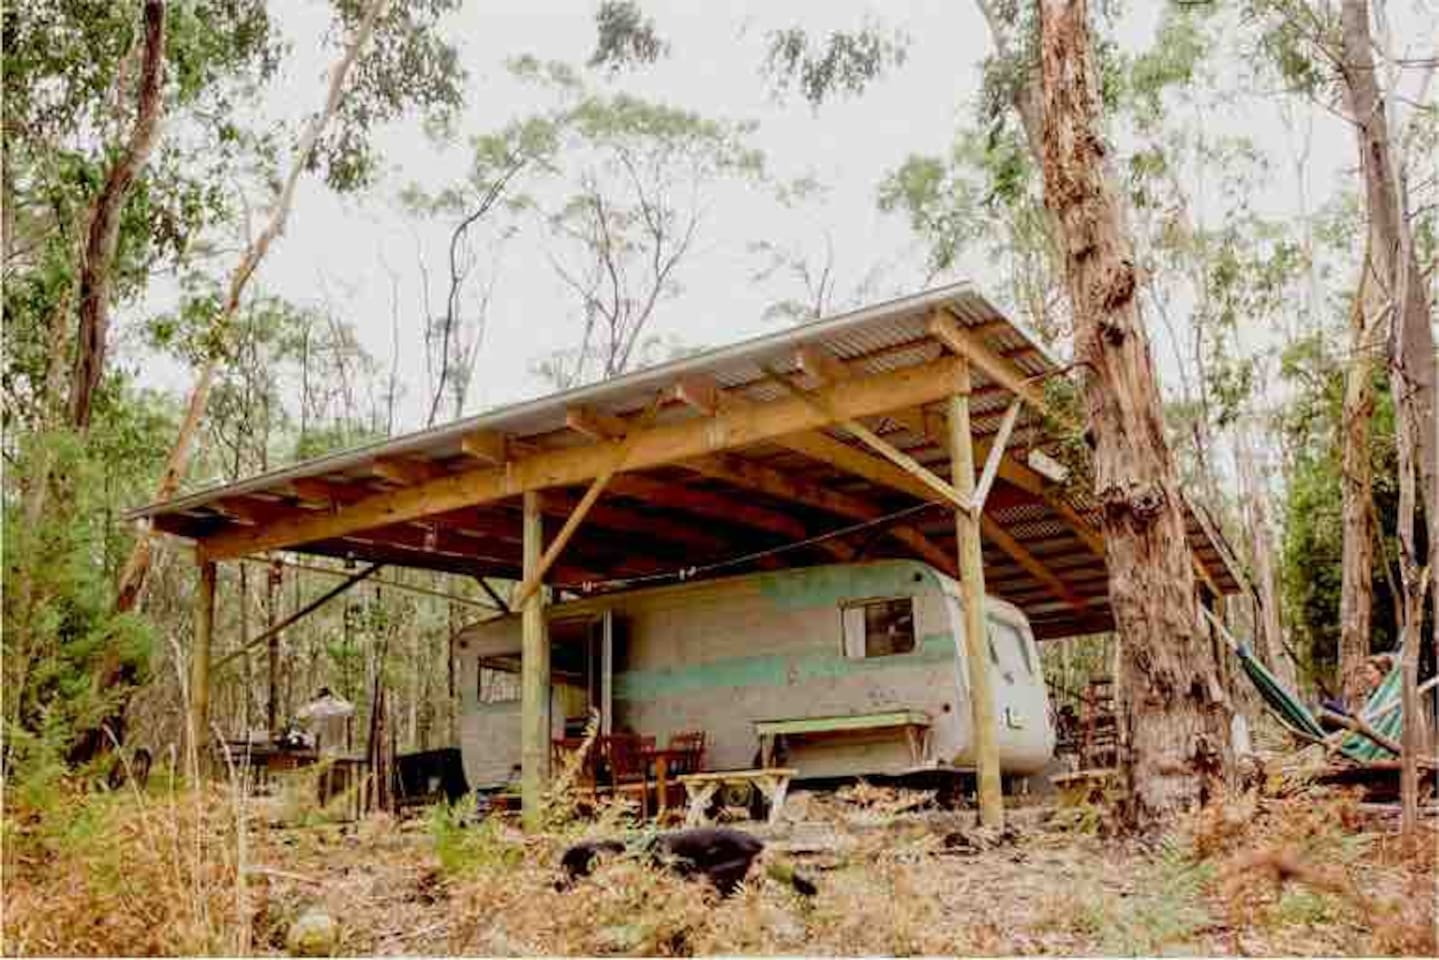 Our Bush Van under the cover of our large farm Shed. Perfect for shady afternoons in the hammock or spacious outdoor time while the rain comes down on the corrugated iron roof...